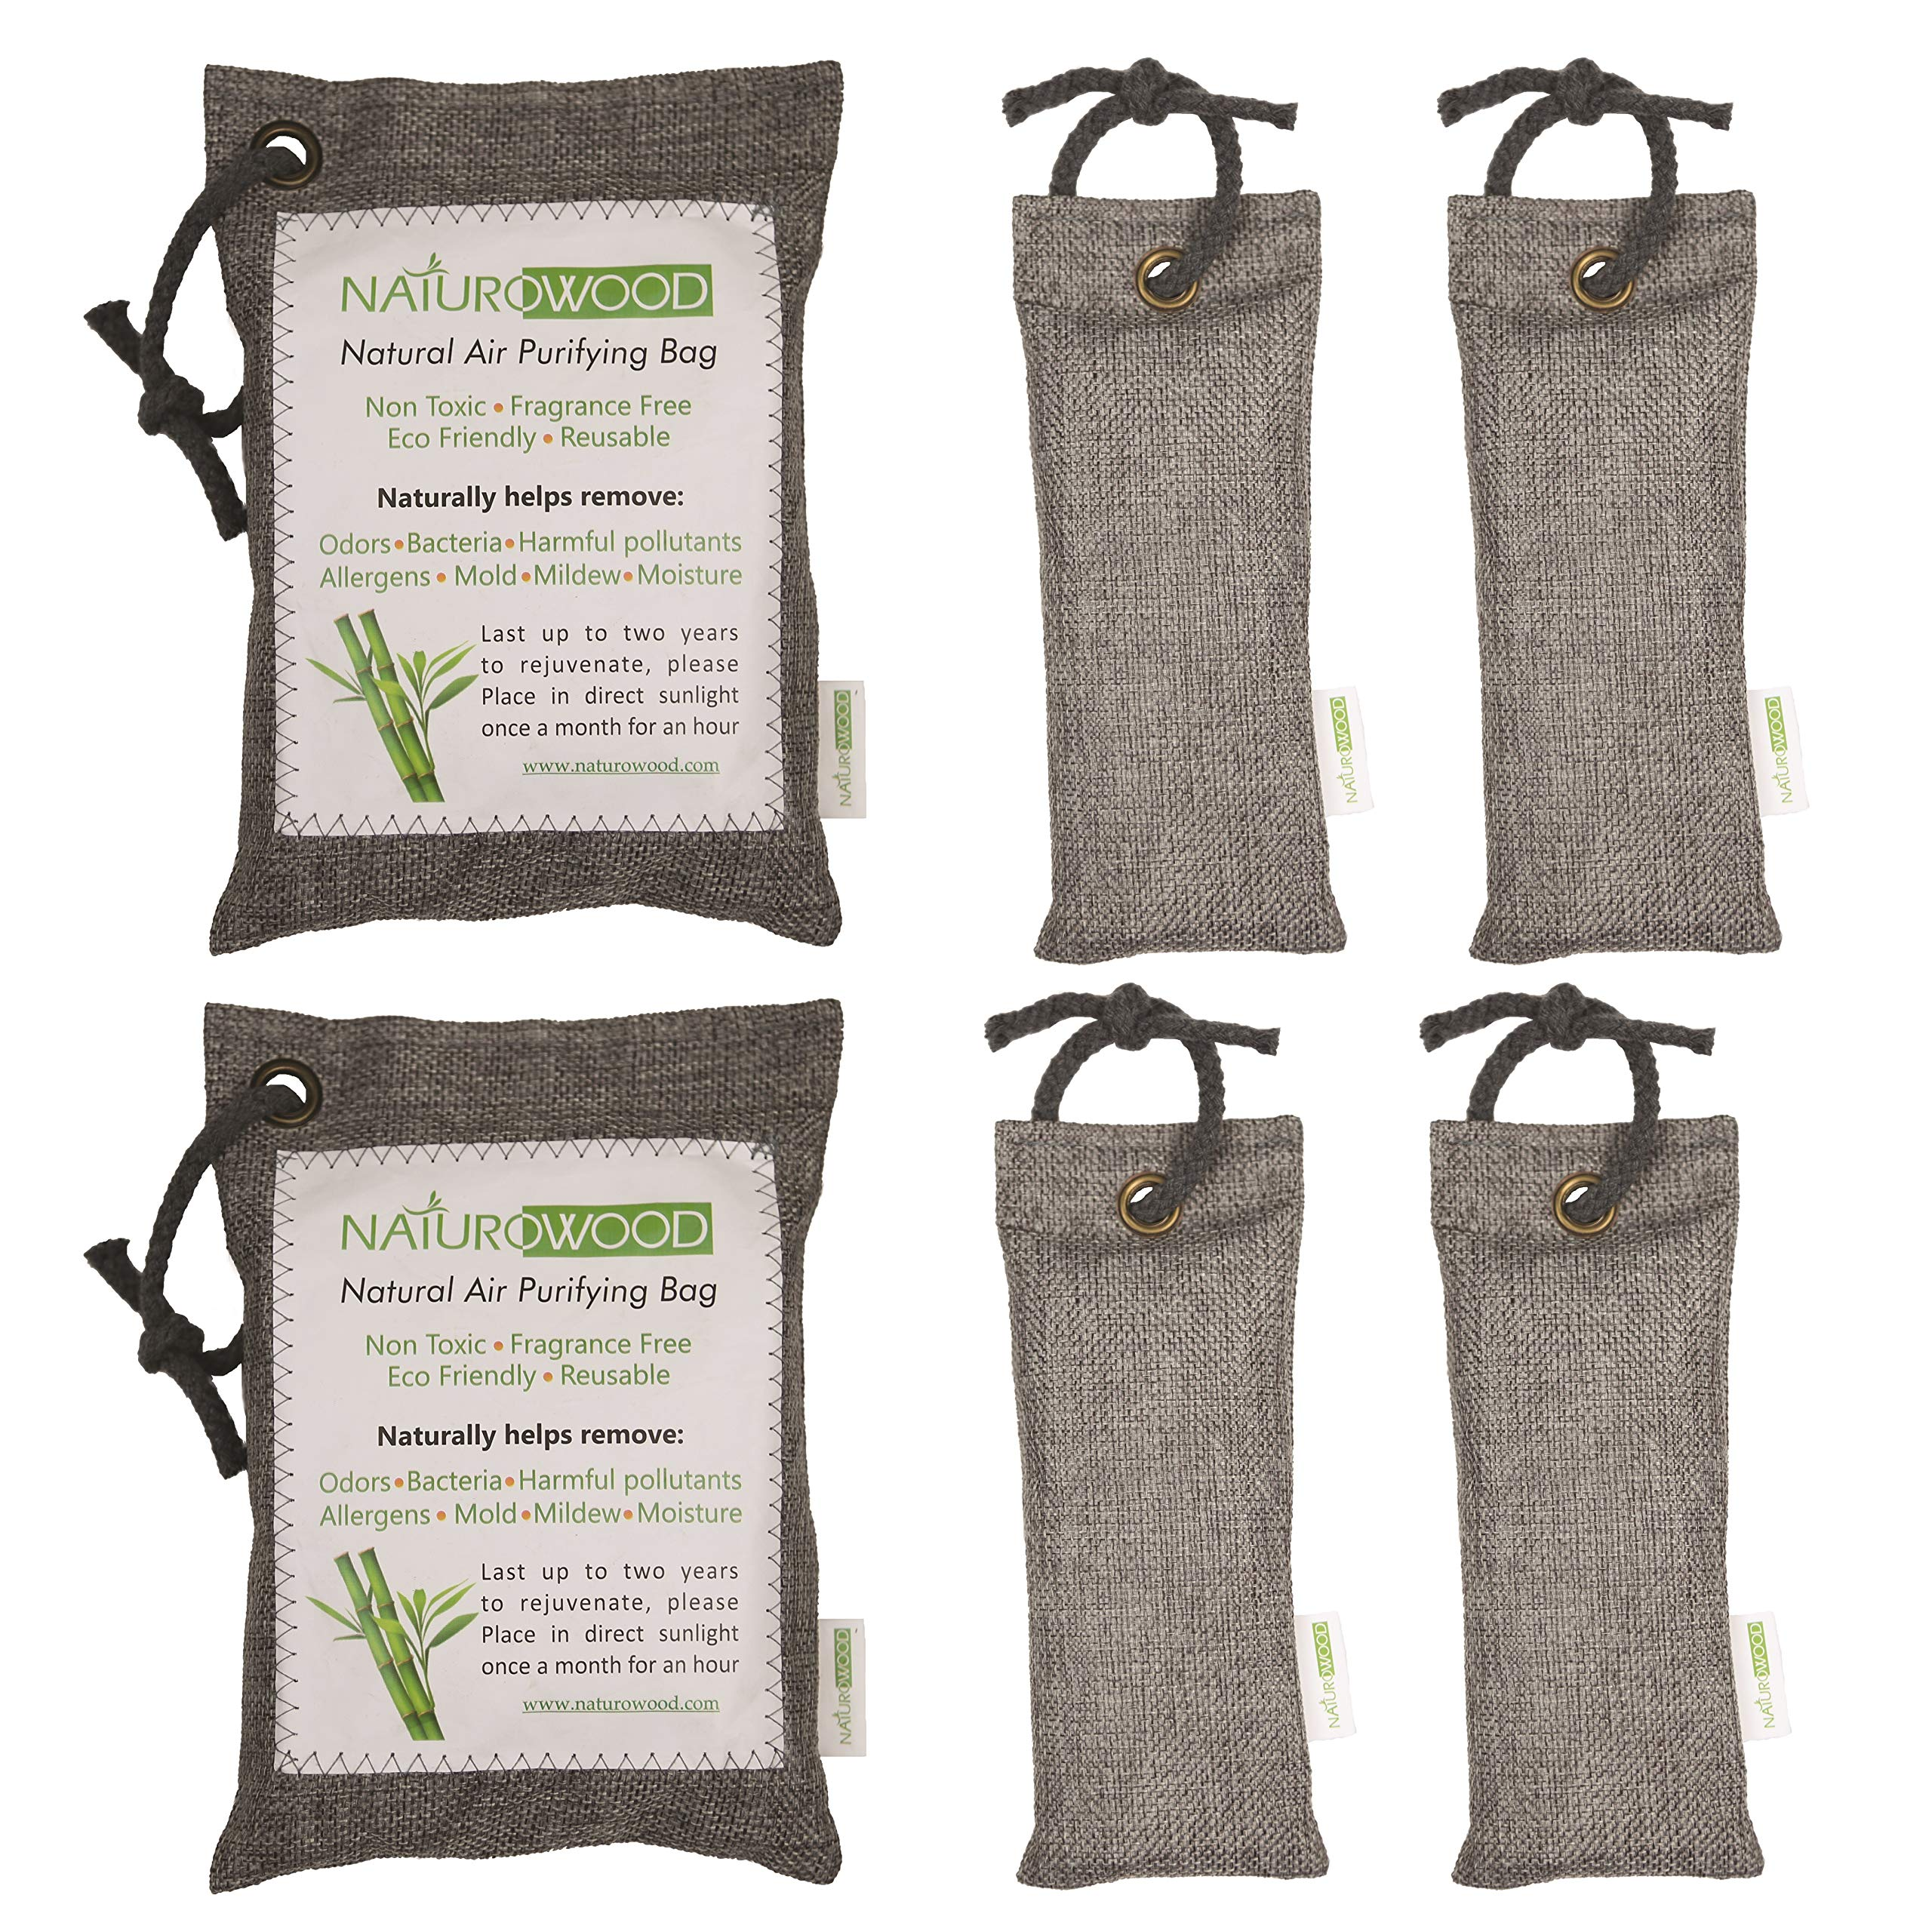 NaturoWood Bamboo Charcoal Air Purifying Bags, The Best Natural Odor Eliminator for Home, Cars, Closets, Bathrooms, Sport Shoes and Bags and Pet Areas- 4x75 g and 2x200 g with 4 Hanging Robes by NaturoWood